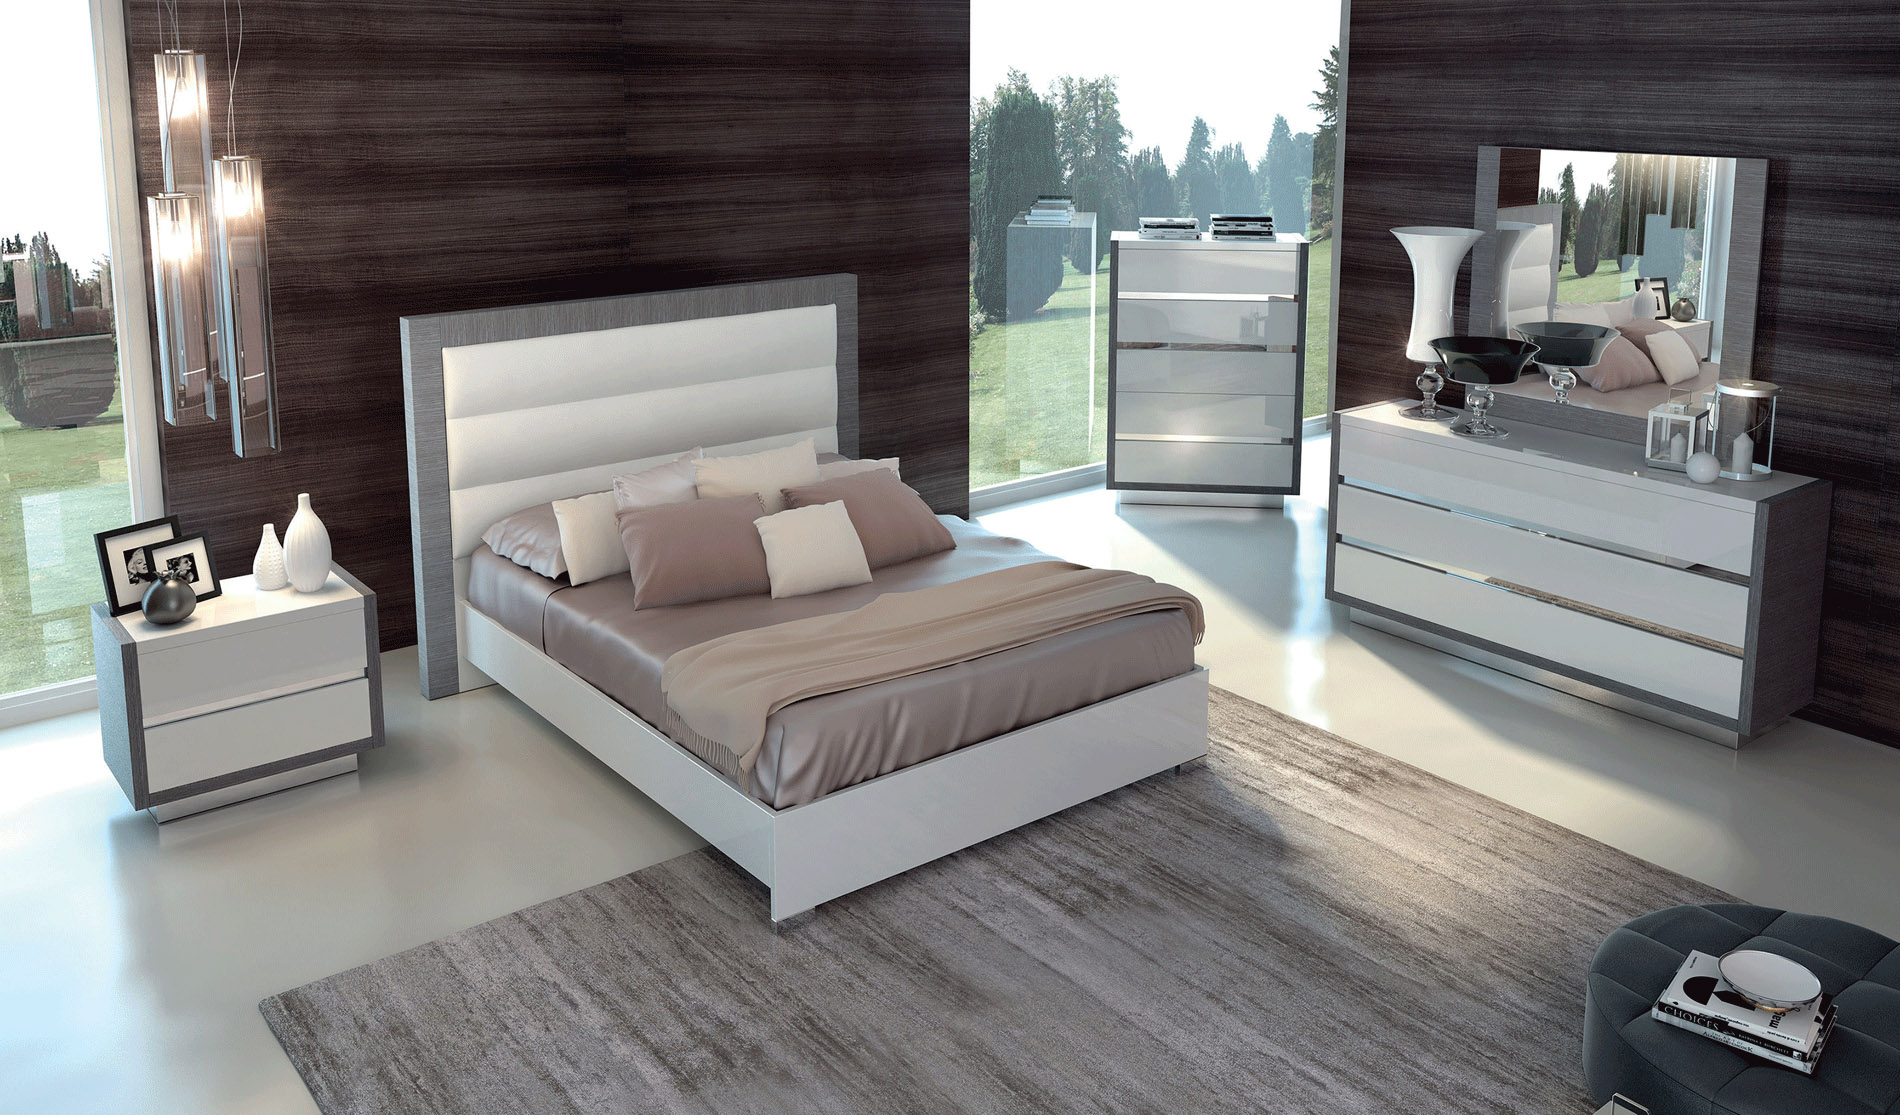 Made In Italy Quality Luxury Bedroom Sets Jacksonville Florida Esf Mangano